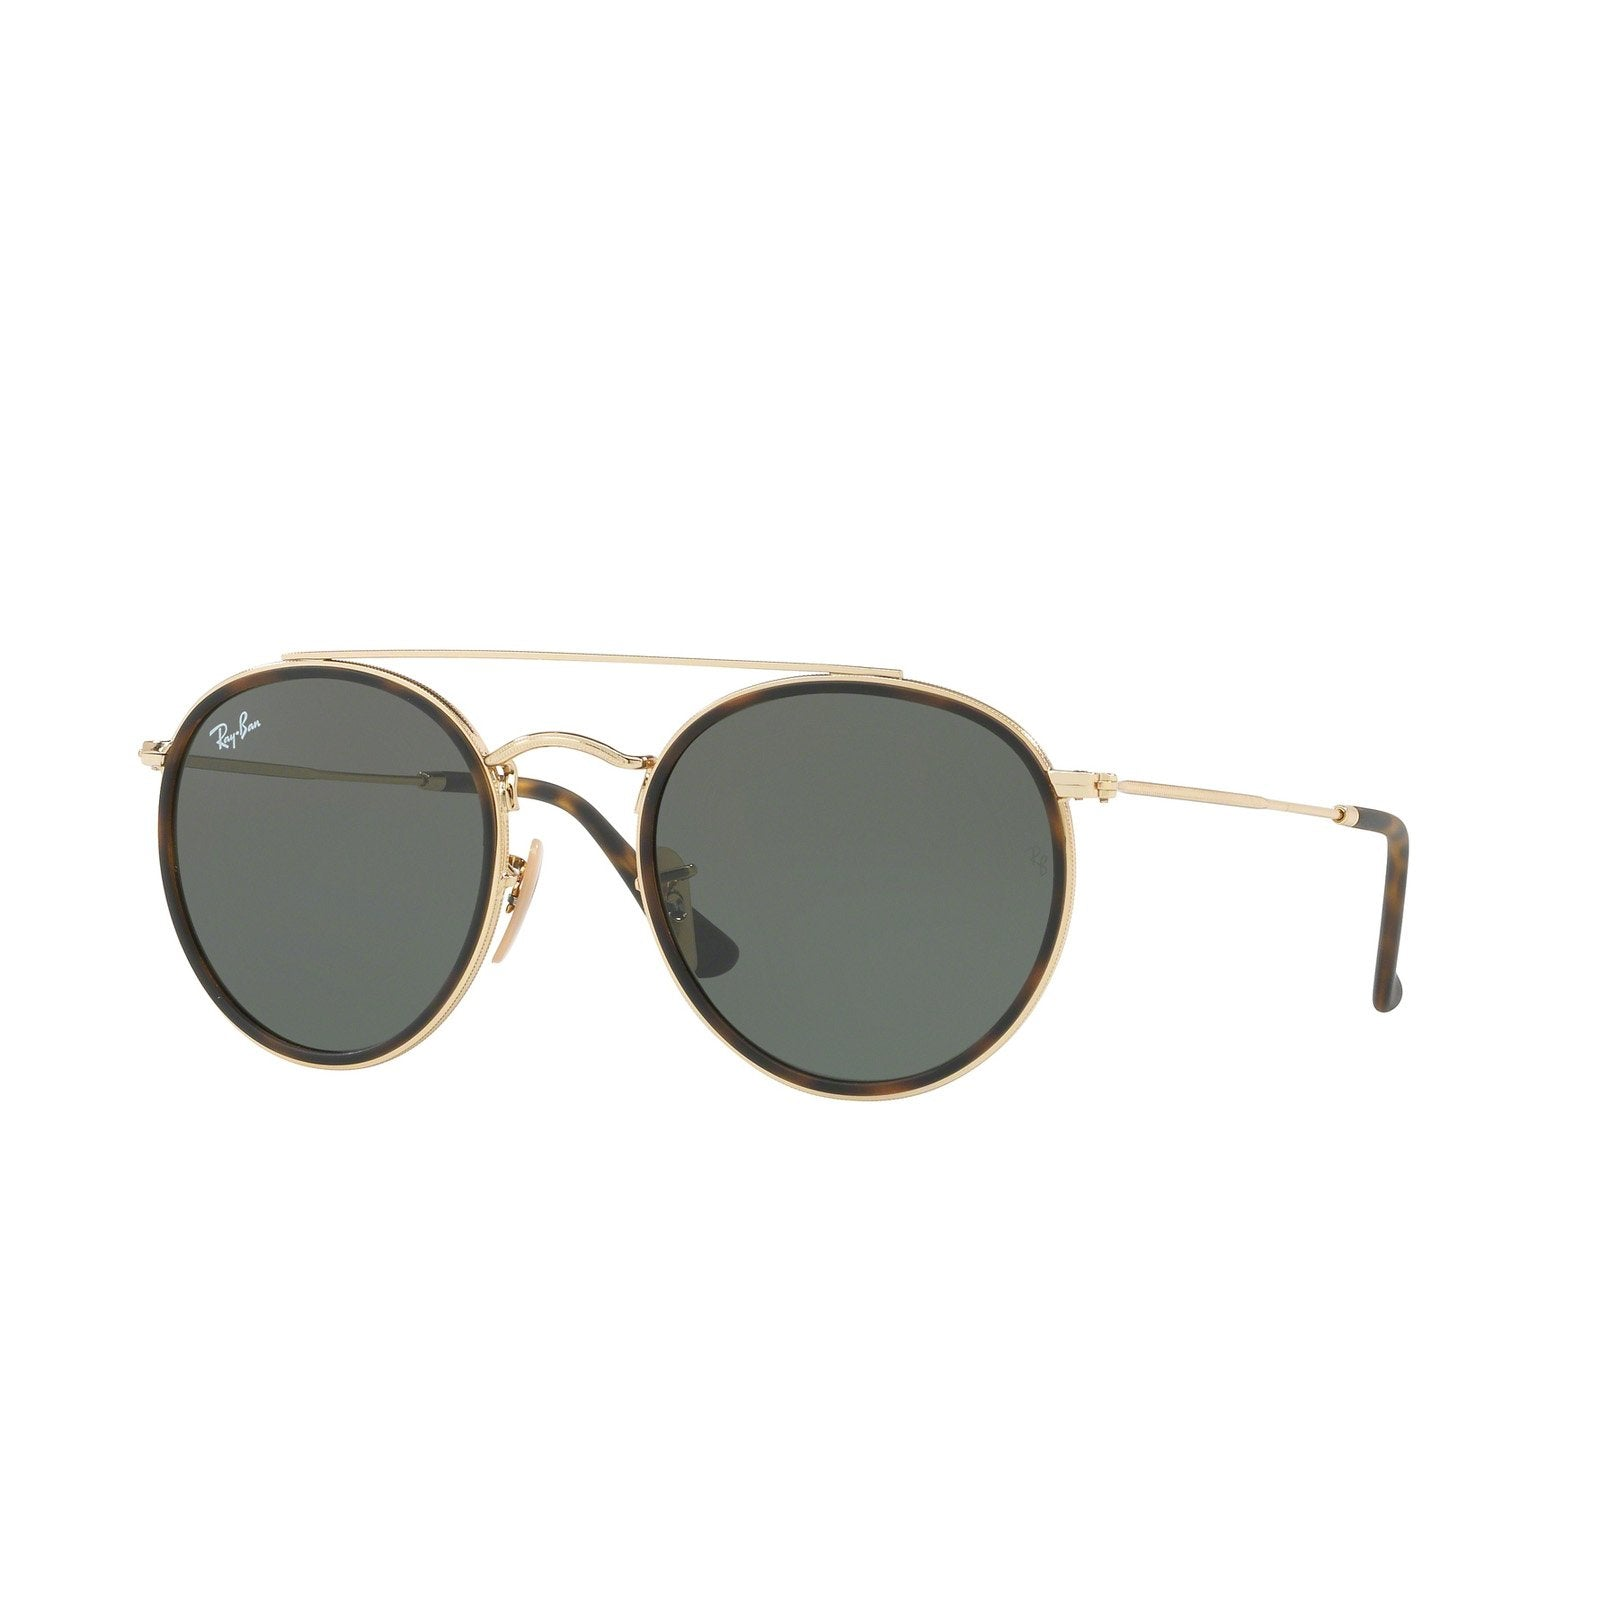 Ray-Ban RB3647N 001 Sunglasses